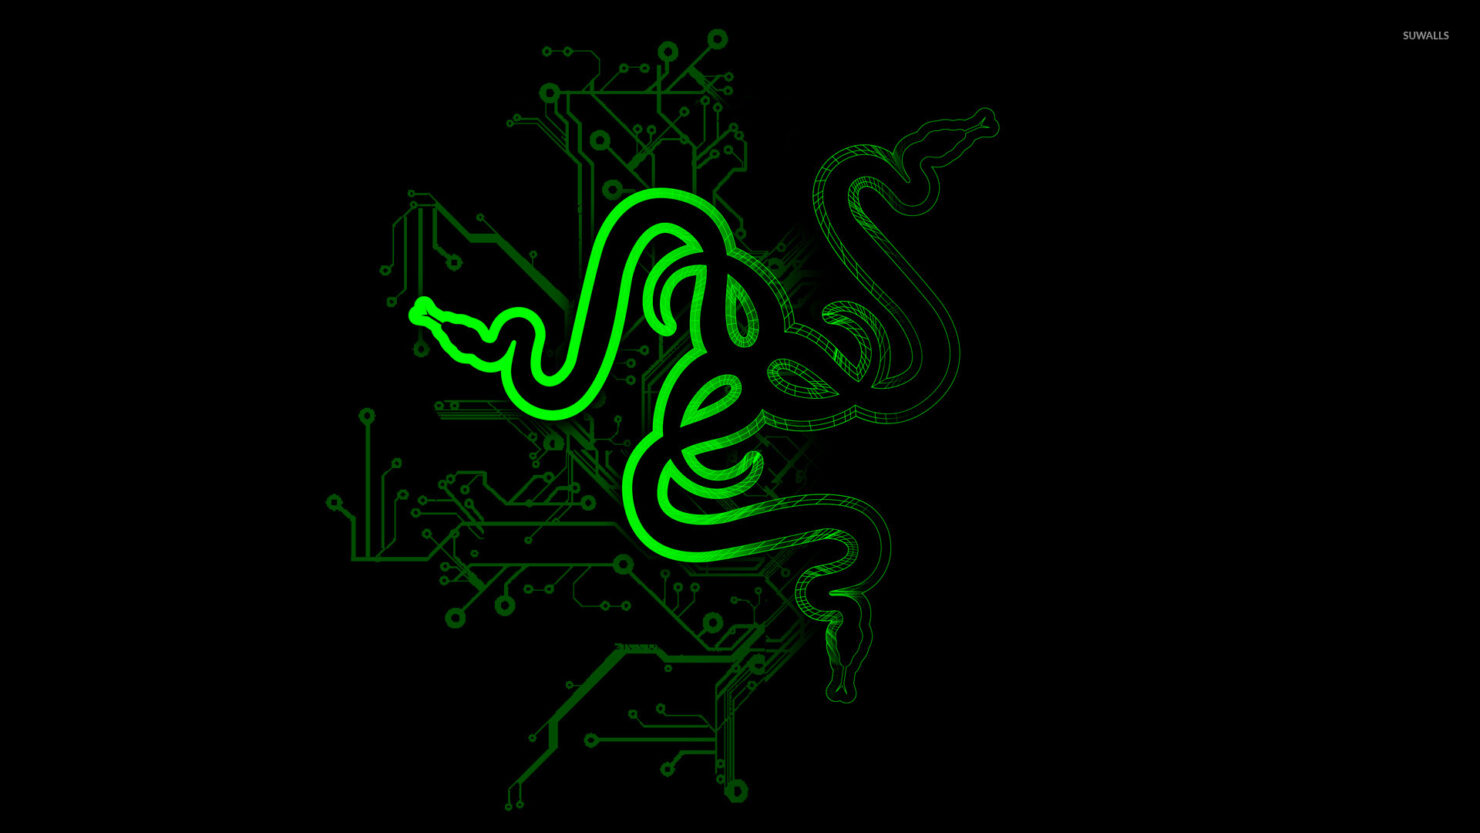 You Save up to 50% on a Variety of Razer PC Gaming Peripherals for Prime Day 2020